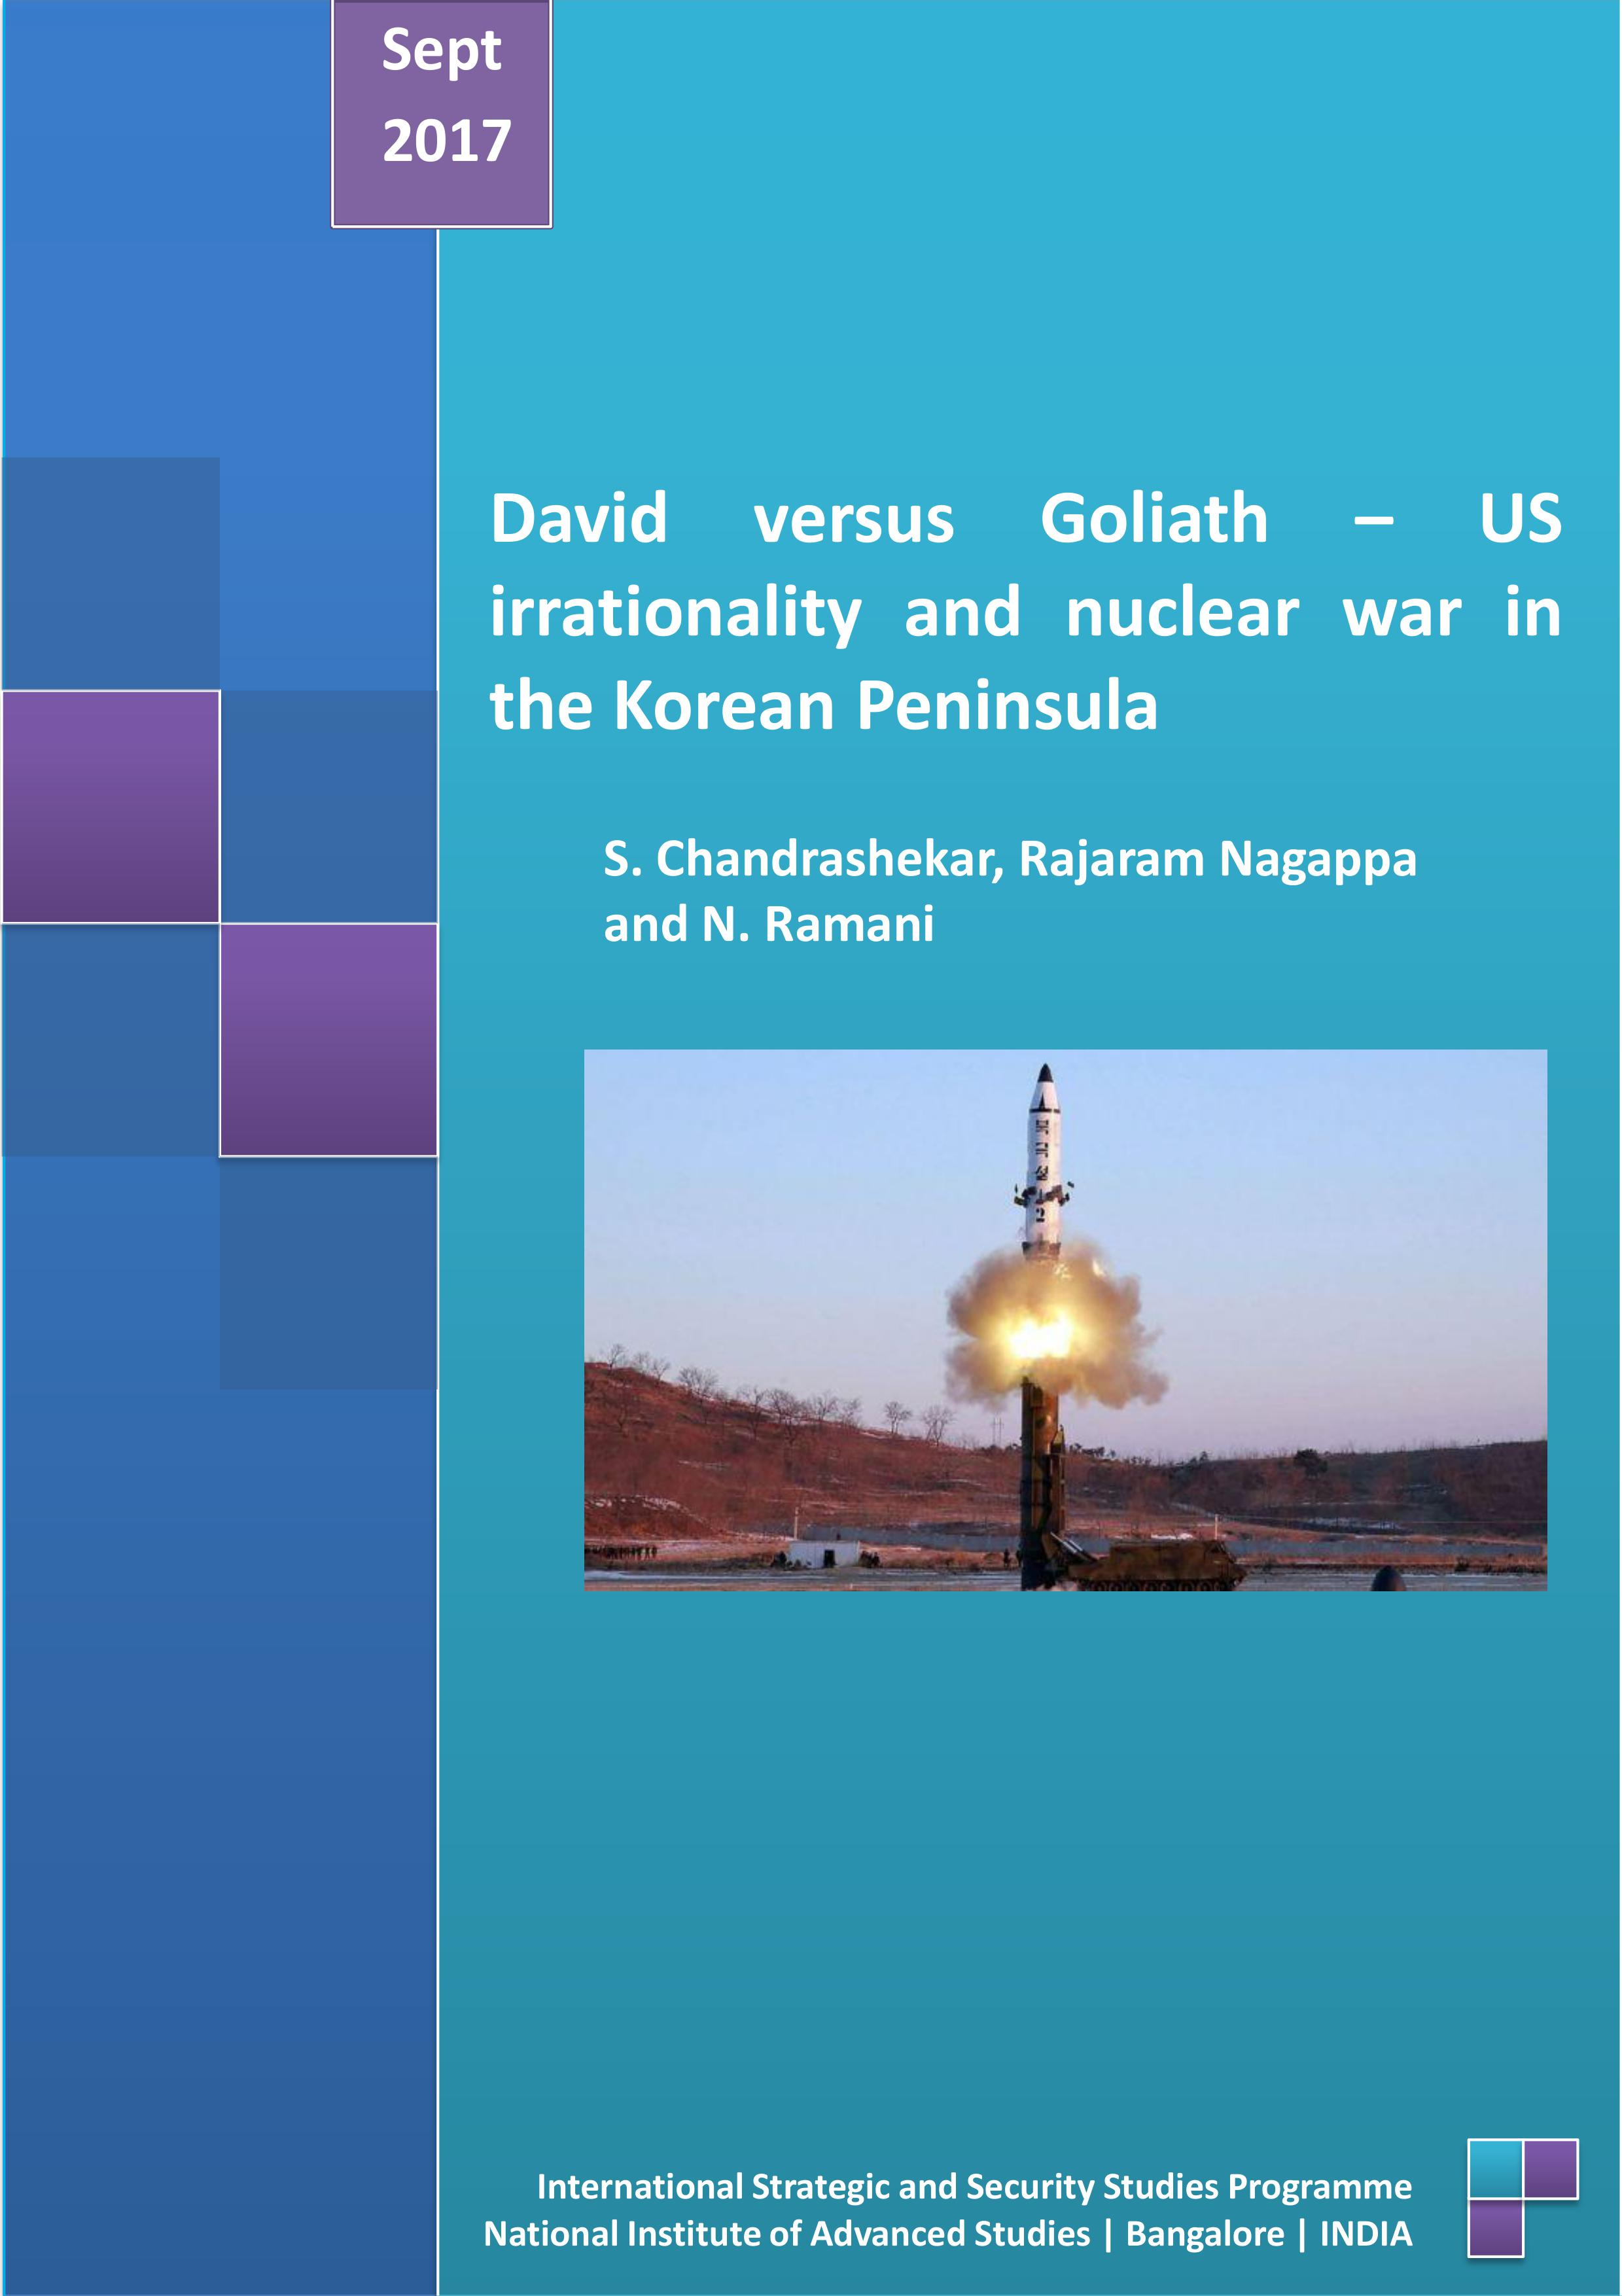 David versus Goliath – US irrationality and nuclear war in the Korean Peninsula